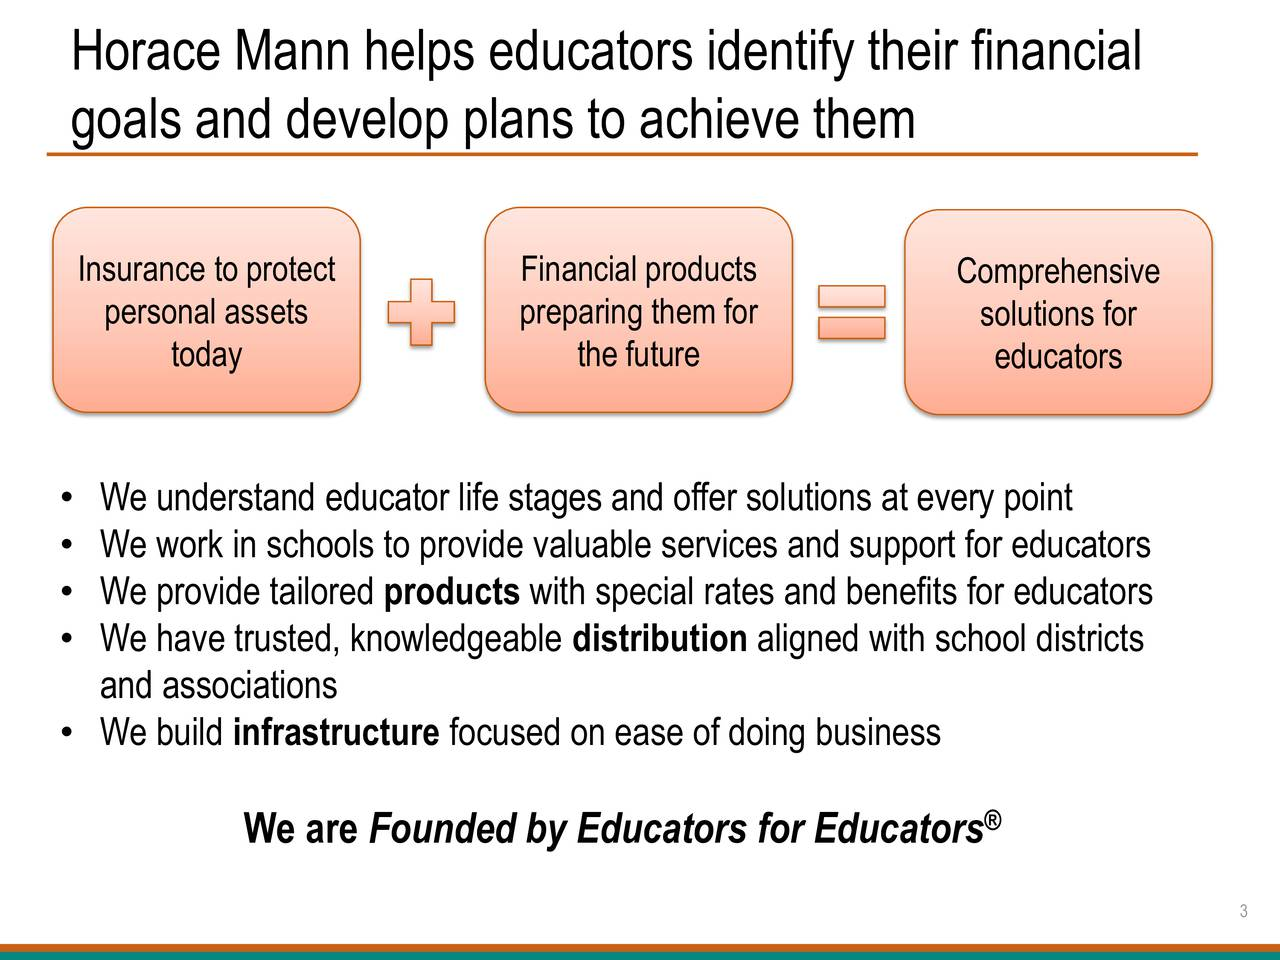 goals and develop plans to achieve them Insurance to protect Financial products Comprehensive personal assets preparing them for solutions for today the future educators We understand educator life stages and offer solutions at every point We work in schools to provide valuable services and support for educators We provide tailored products with special rates and benefits for educators We have trusted, knowledgeable distribution aligned with school districts and associations We build infrastructure focused on ease of doing business We are Founded by Educators for Educators 3